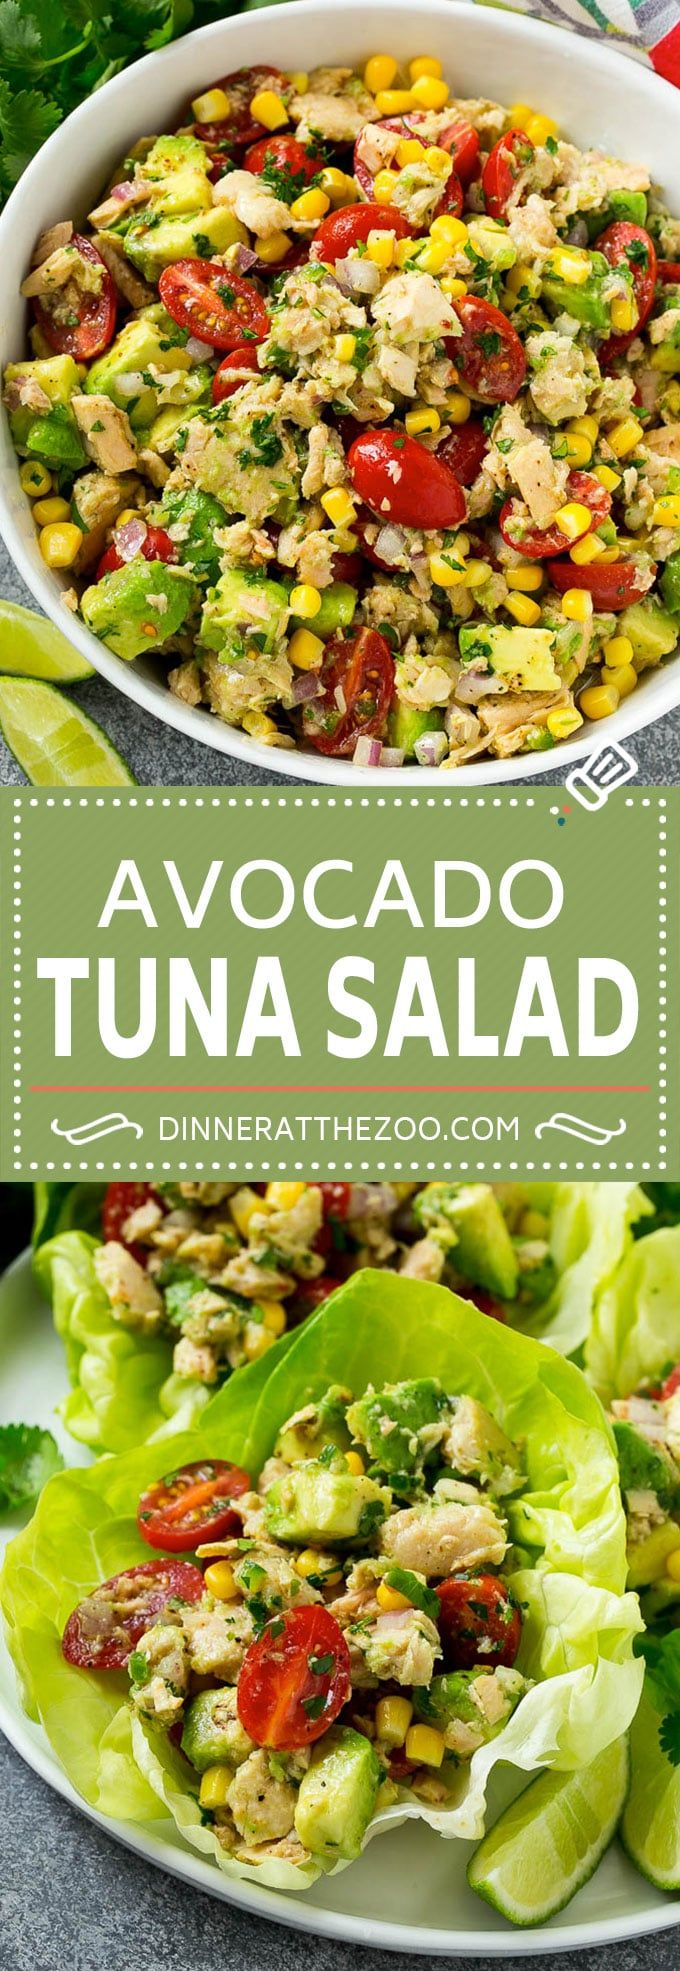 Avocado Tuna Salad Recipe | Mexican Tuna Salad | Easy Tuna Salad | Healthy Tuna Salad